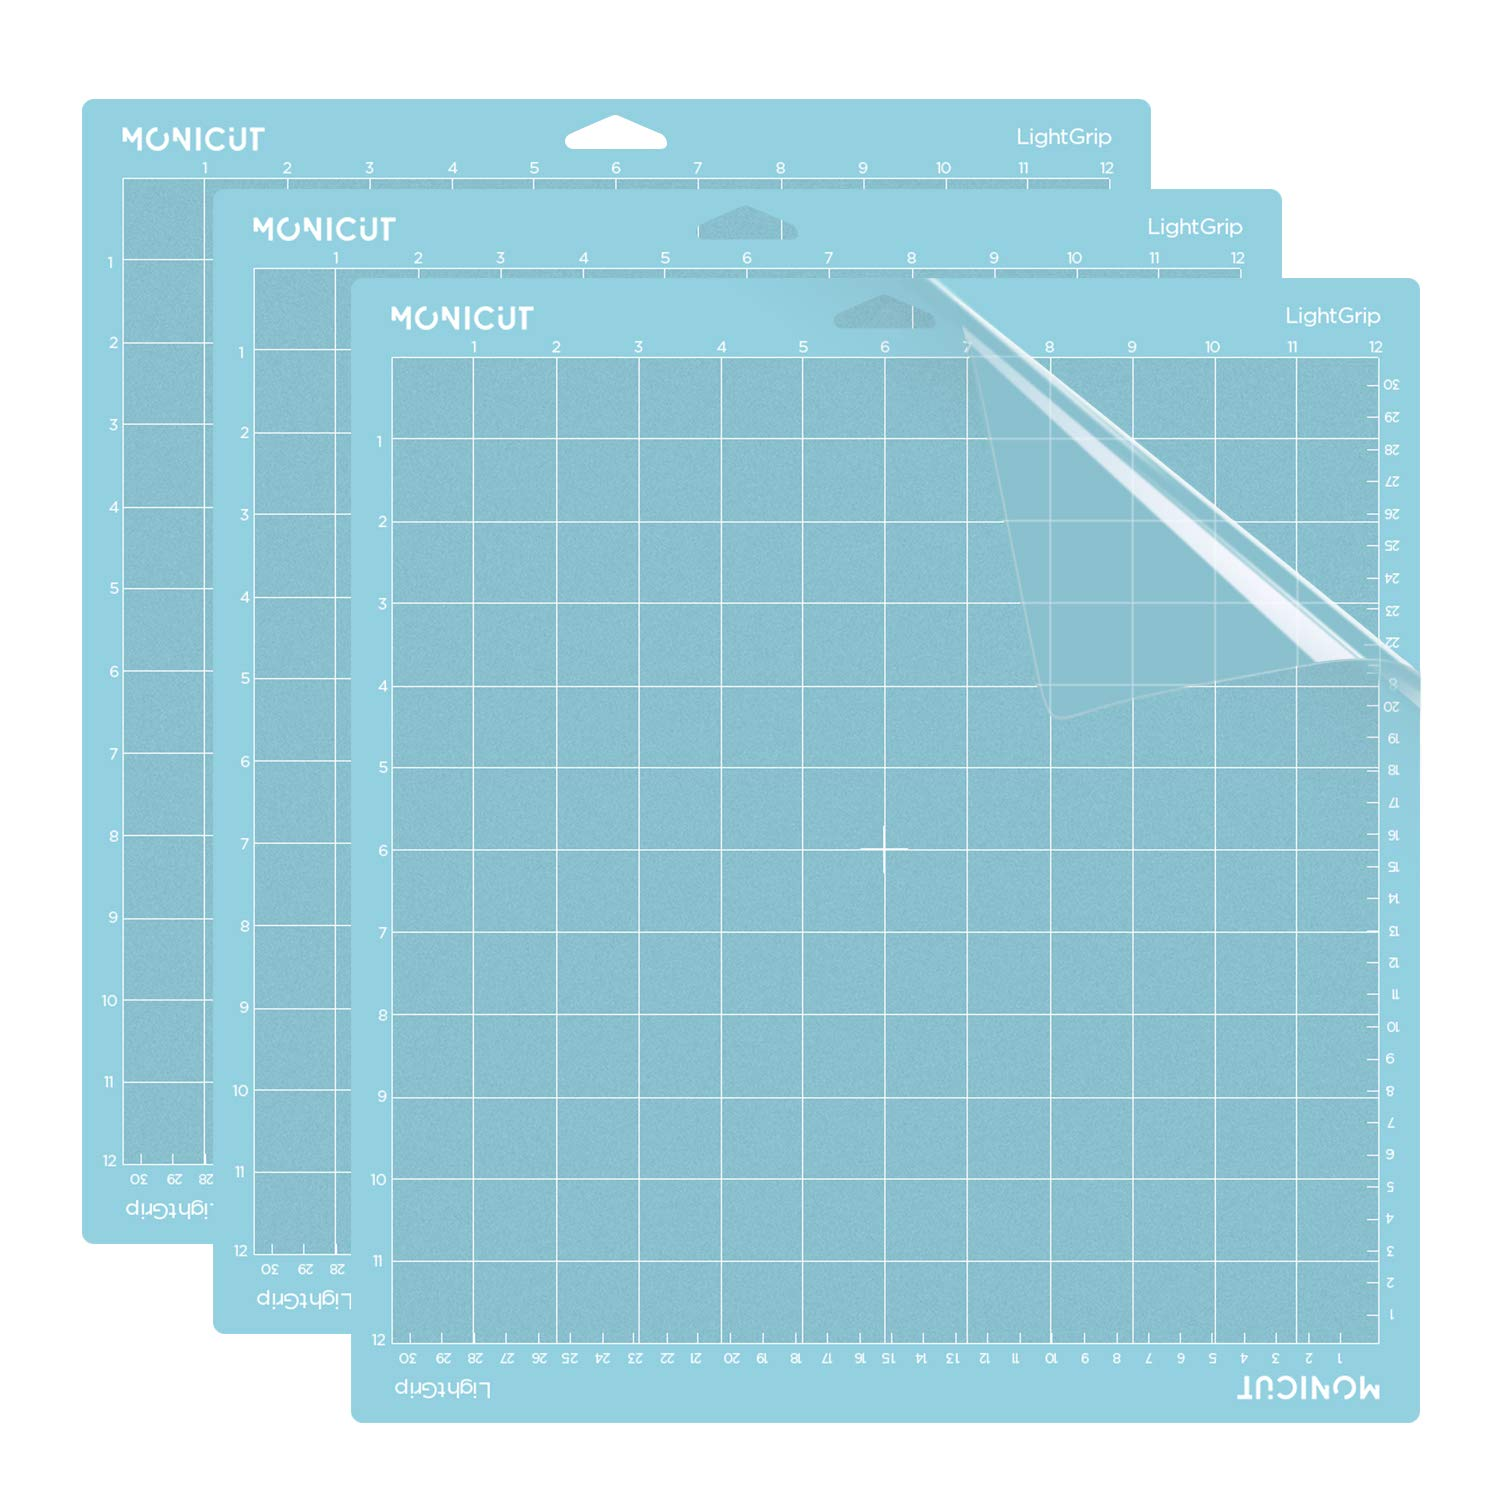 Monicut 12x12 Lightgrip Cutting Mat for Cricut Explore One/Air/Air 2/Maker(3 Pack) Adhesive&Sticky Non-Slip Flexible Square Gridded Blue Cut Mat Replacement for Crafts, Quilting, Sewing and All Arts by MONICUT